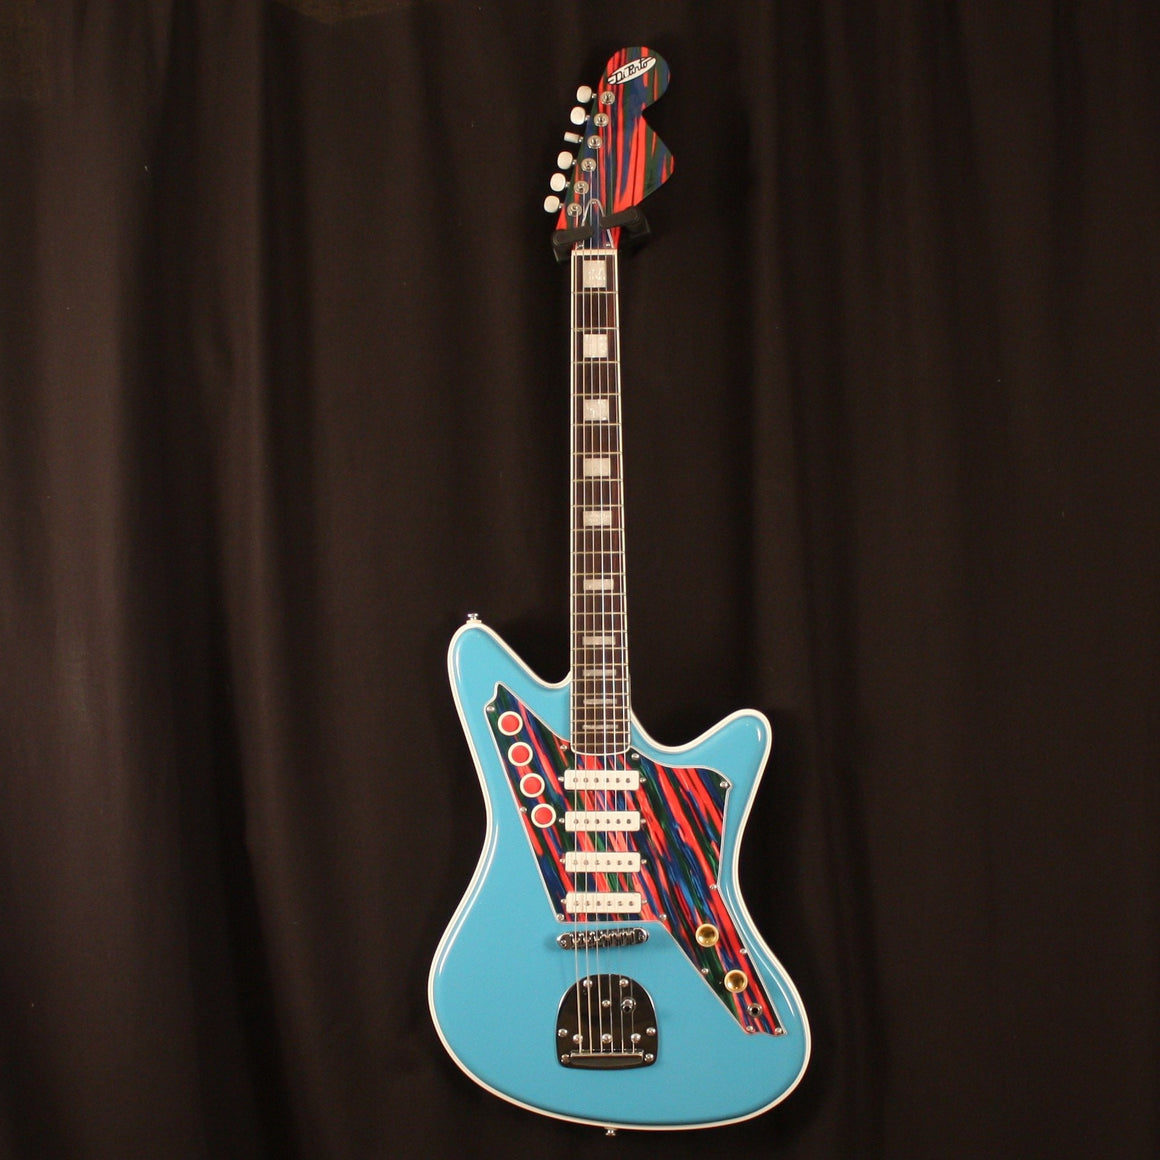 Dipinto Electric Guitar DiPinto Right Handed Galaxie IV Deluxe Electric Guitar Sonic Blue/Serape